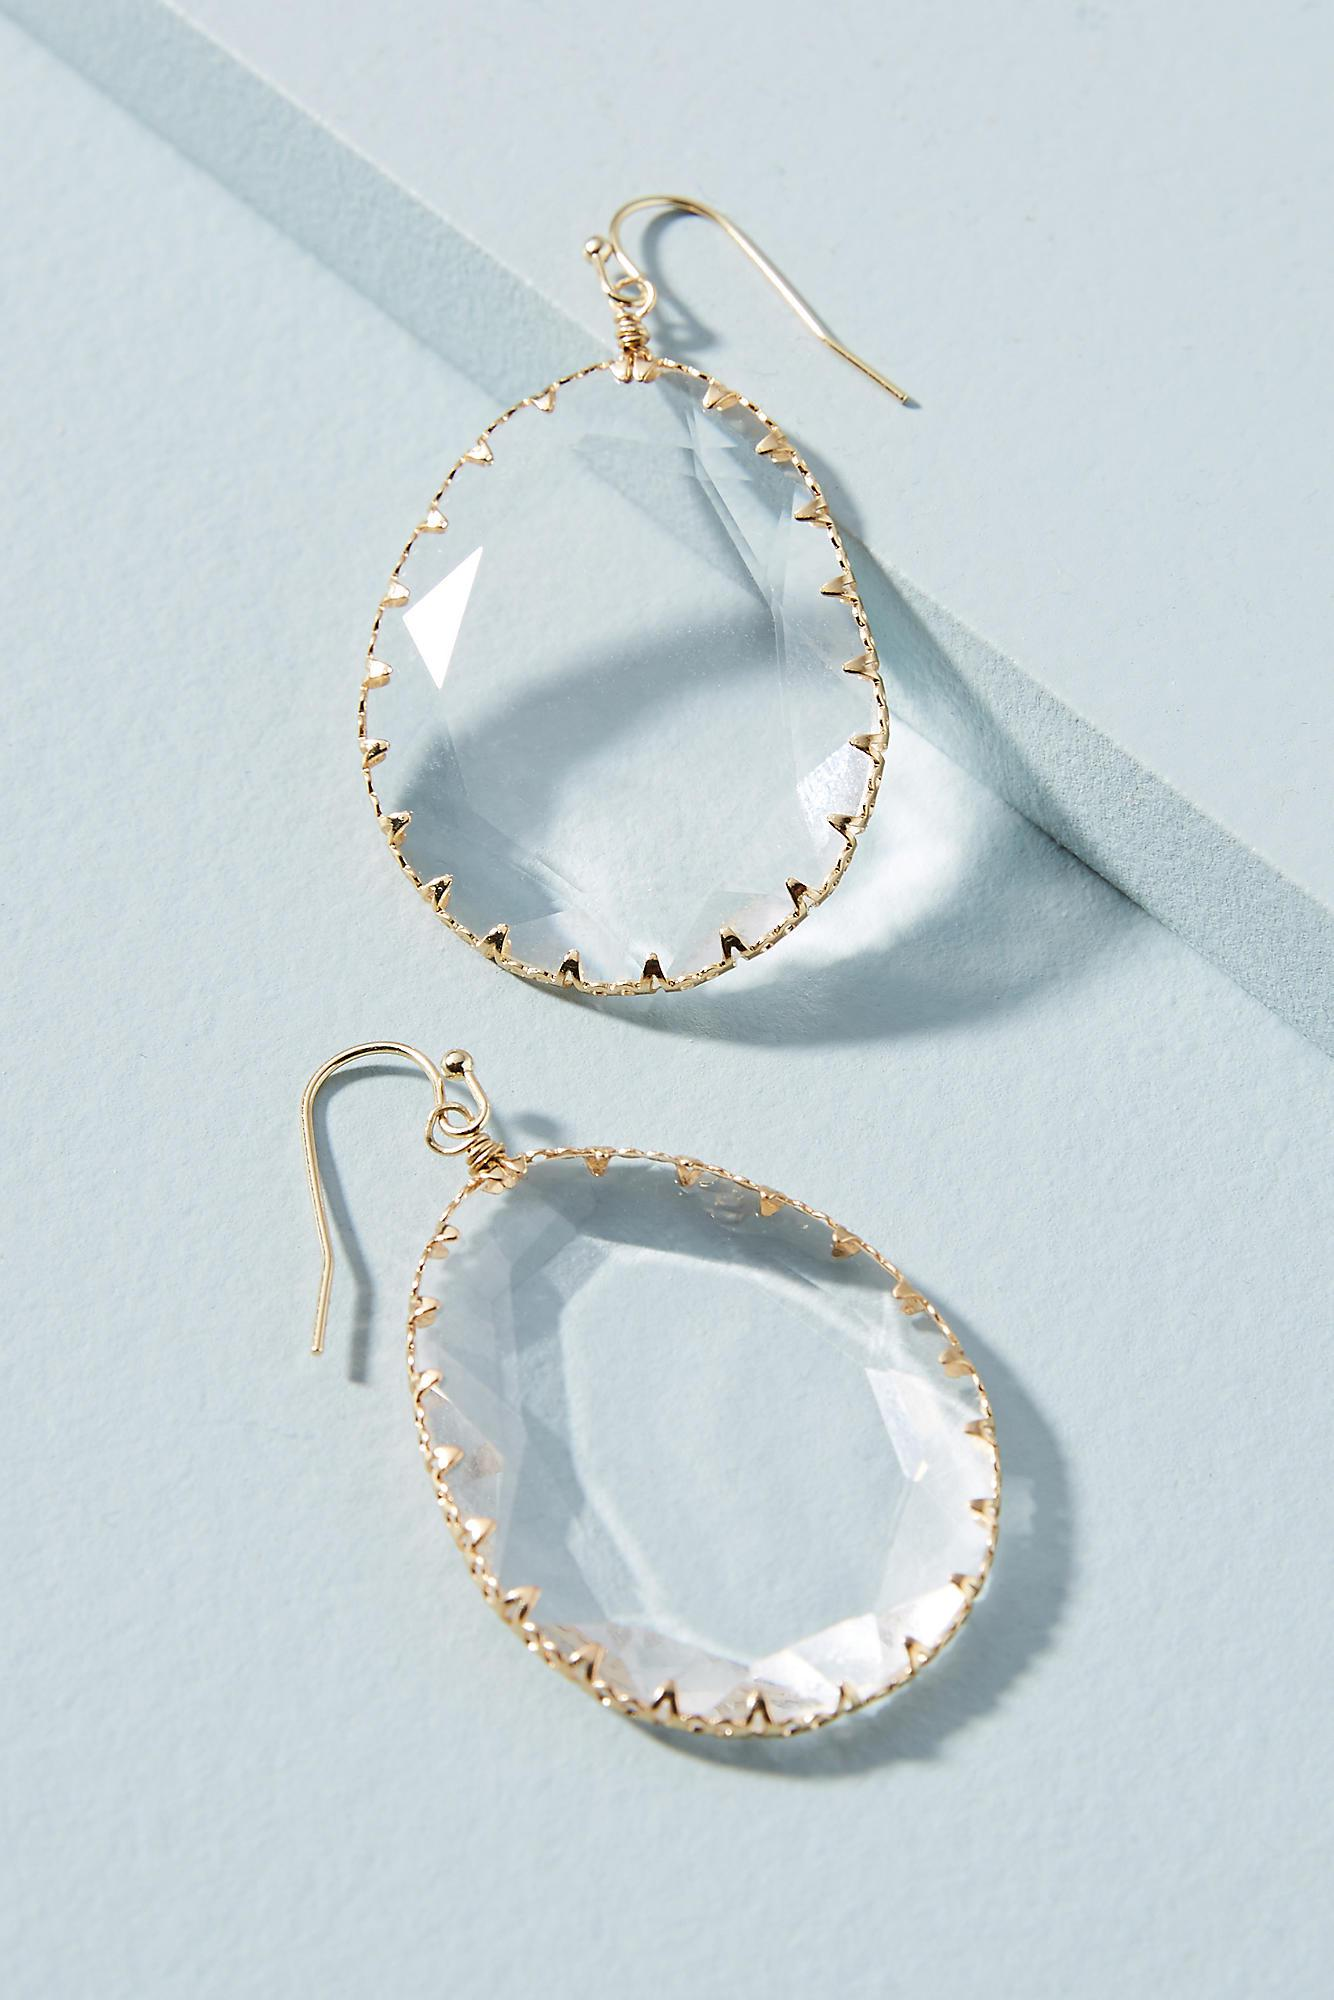 Anthropologie Reflecting Pool Circle Drop Earrings sSzFSUP